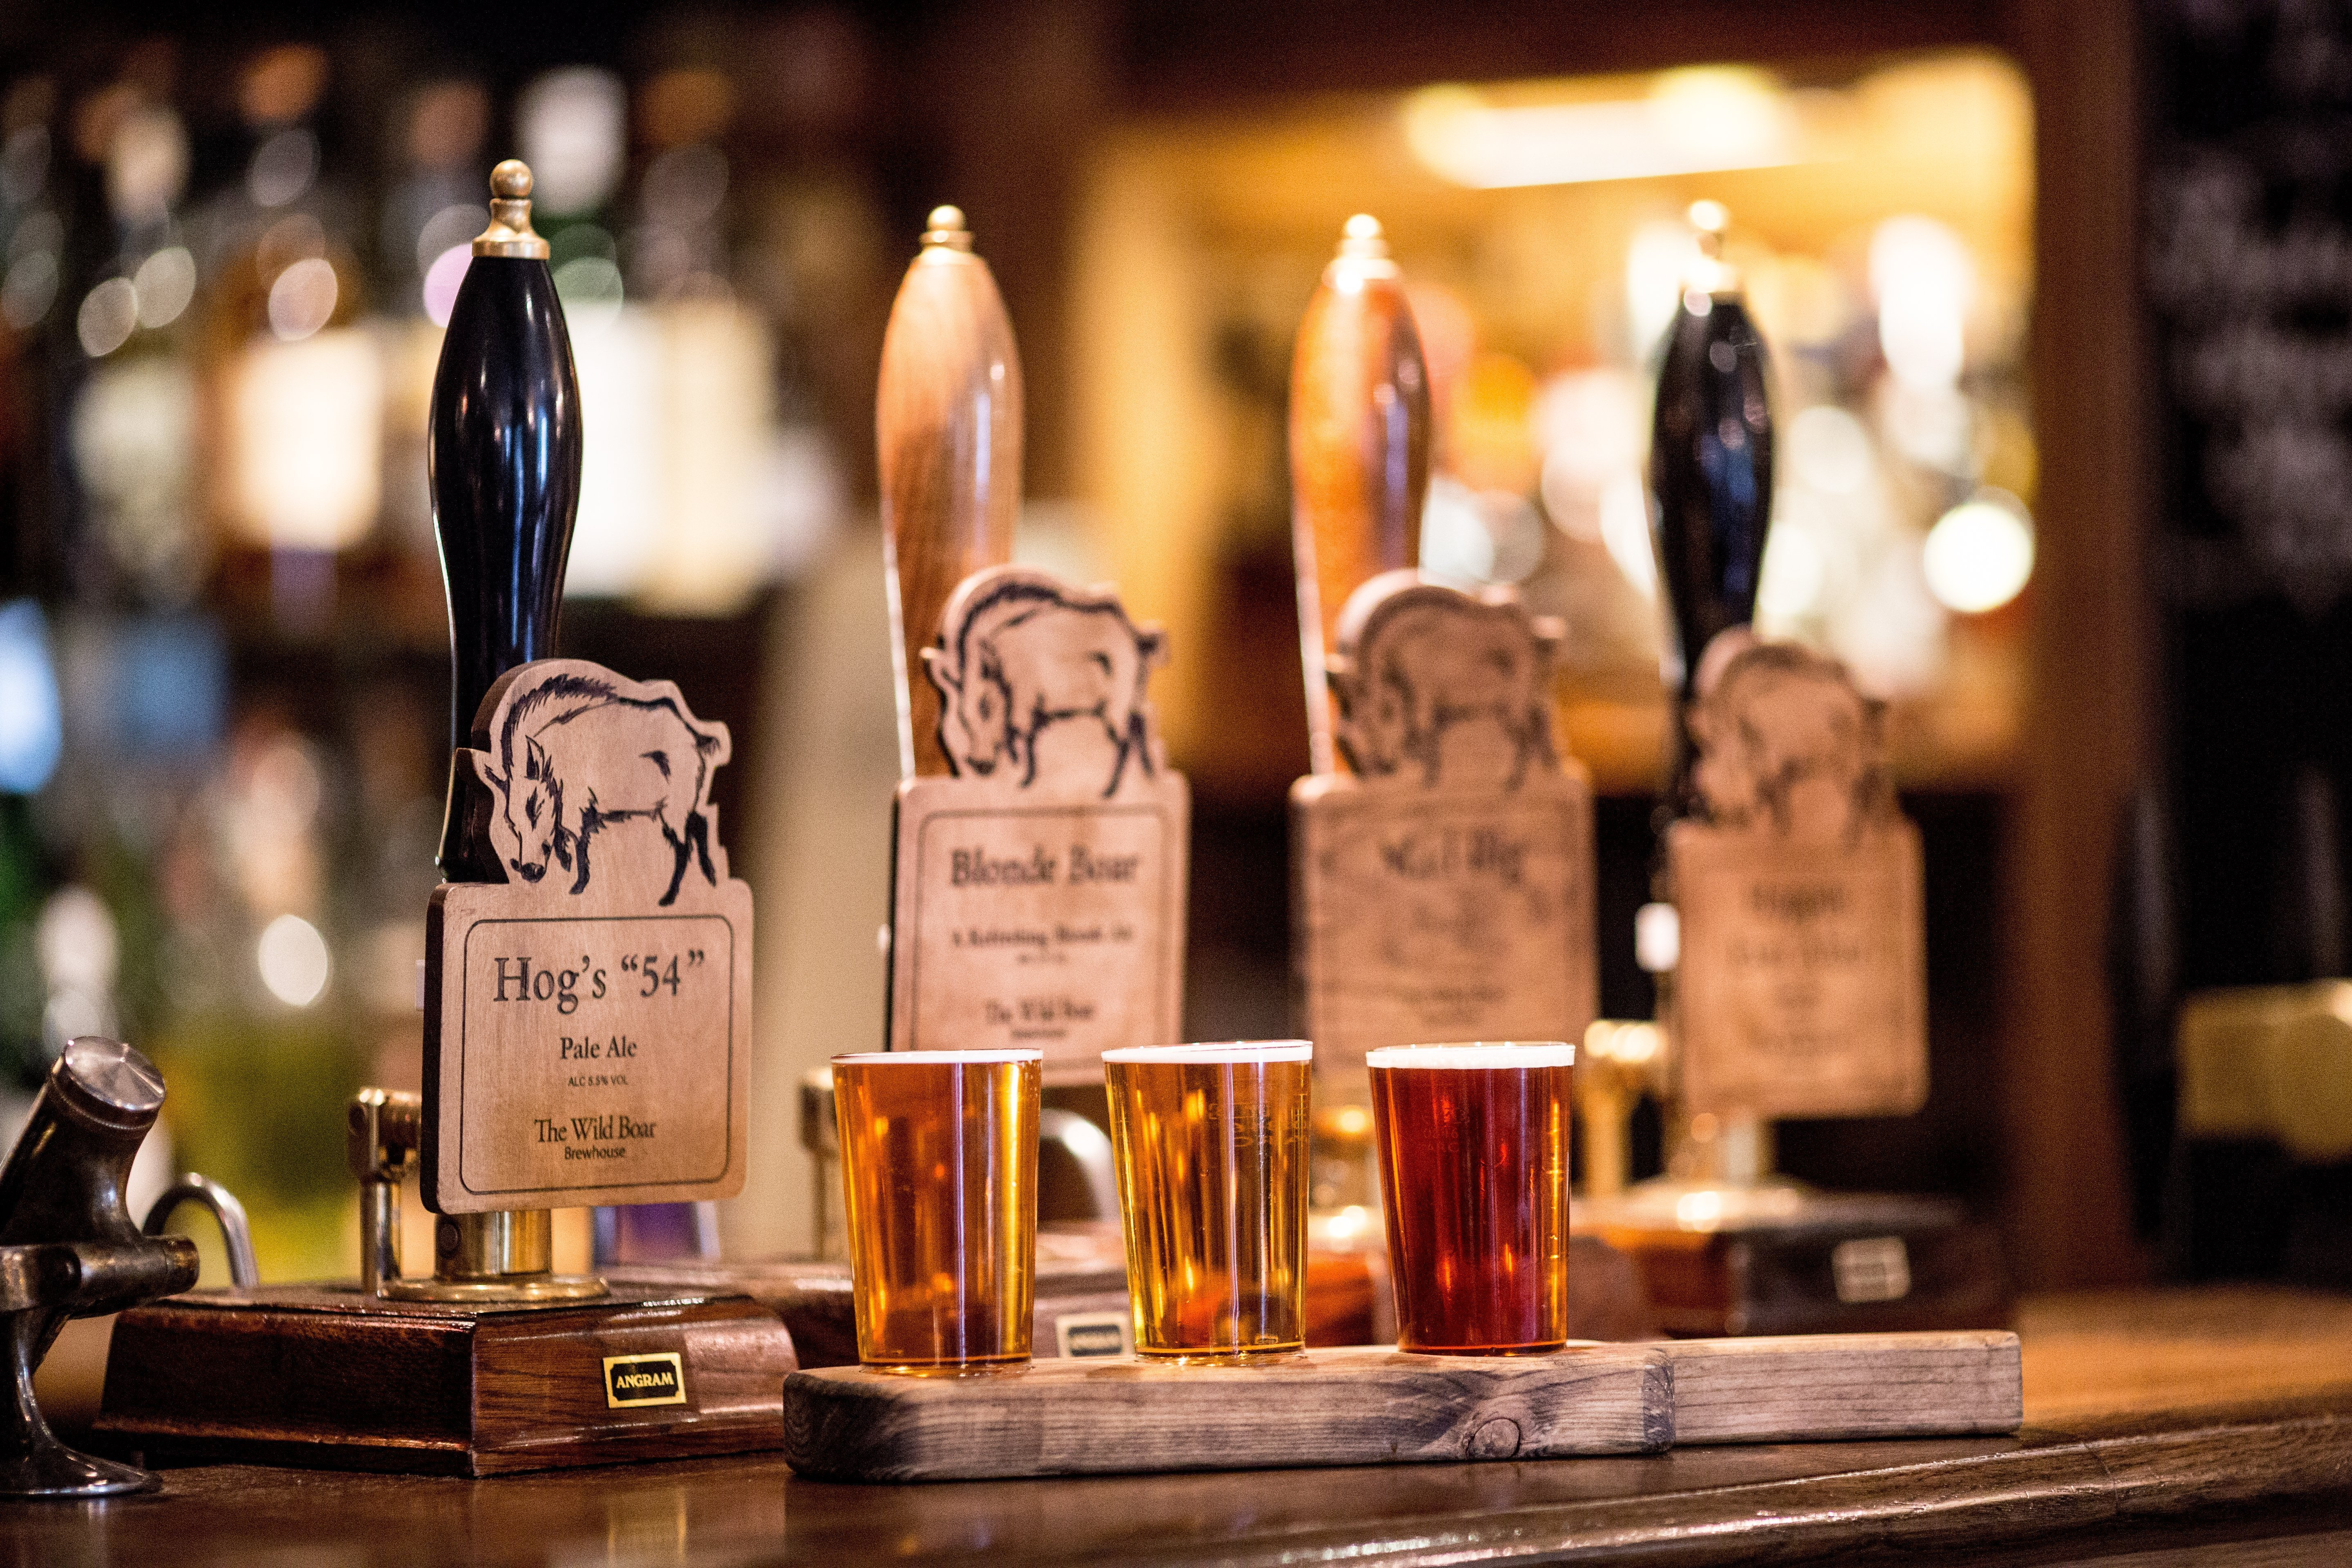 The Wild Boar Real Ale Selection